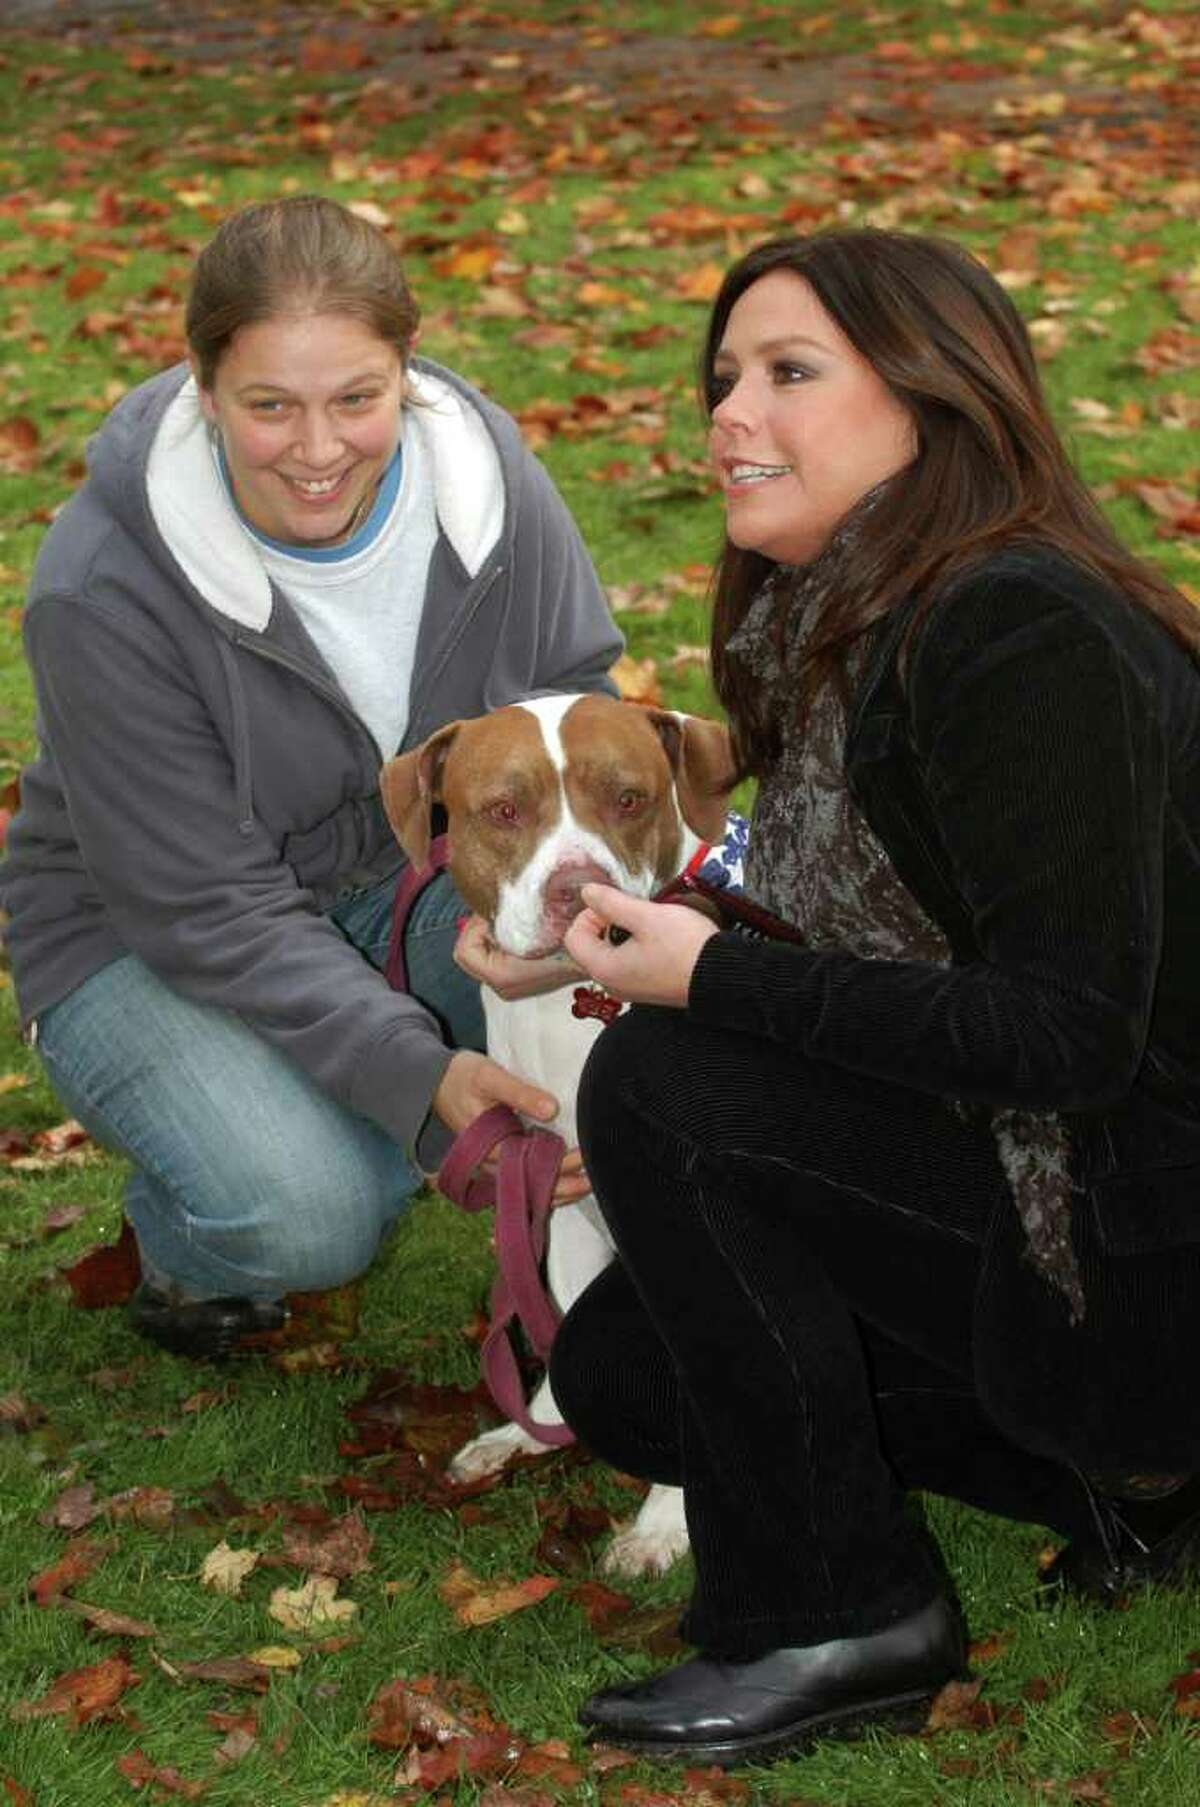 Rachael Ray stopped by the Adopt-A-Dog event on Sherman Green in Fairfield, Conn. on Friday November 5, 2010. After posing with Kristen Alouisa and 61/2 year old Tyke, one of the dogs up for adoption, Rachael made a $7,500 donation to the cause before heading over to Borders Bookstore for a book signing.